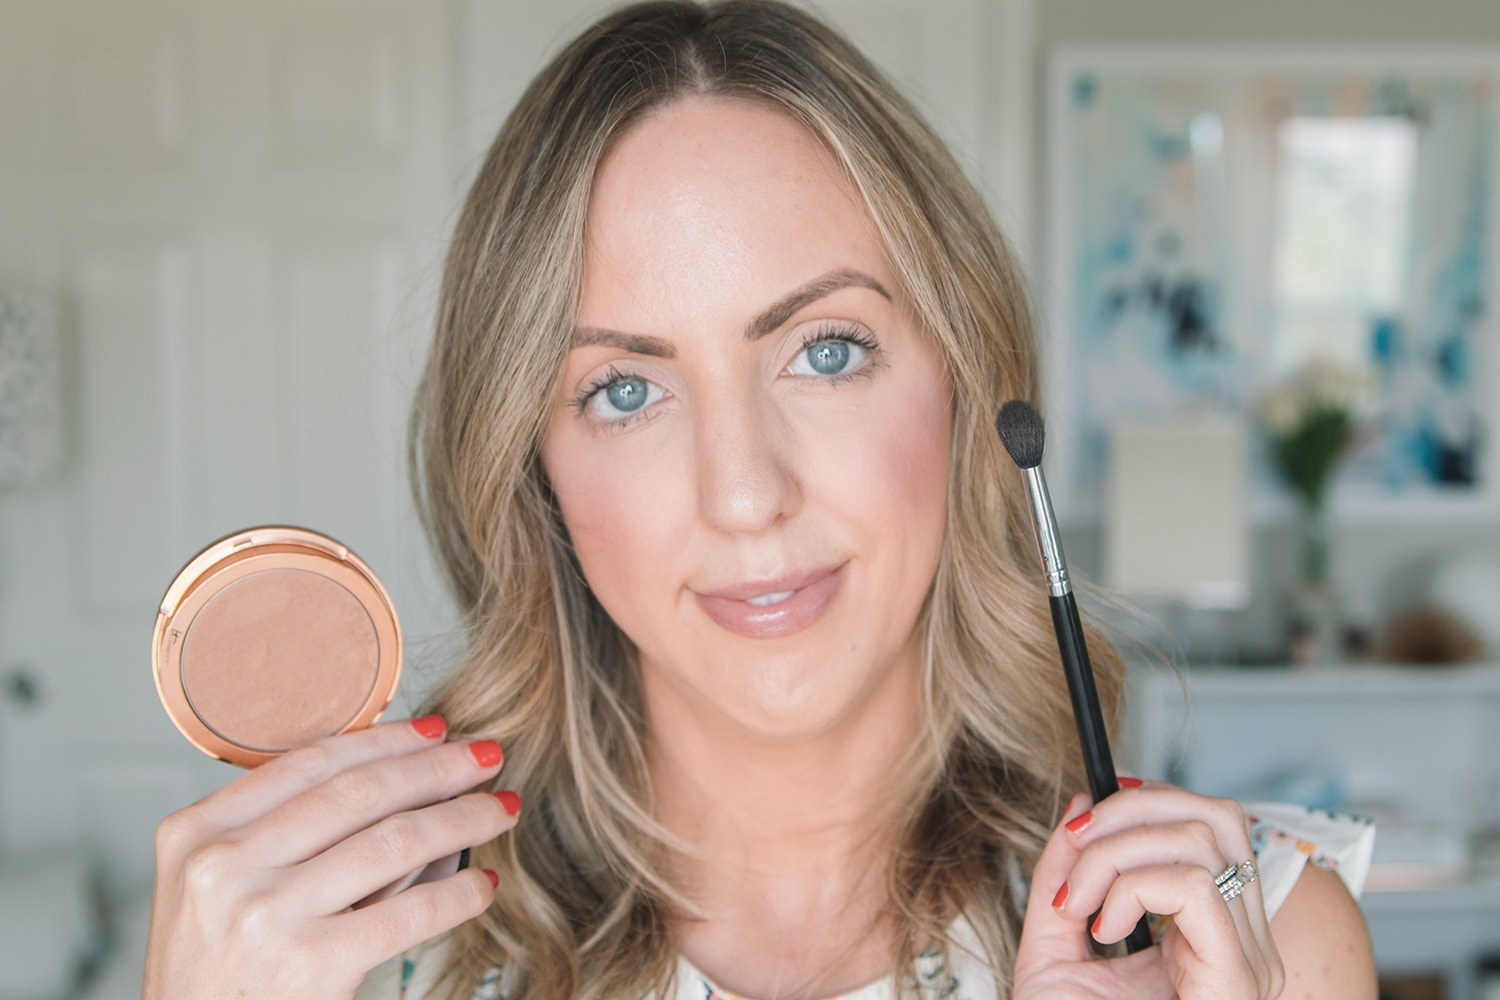 Houston beauty blogger Meg O. on the Go shares how you can use bronzer to achieve gorgeous and natural eye makeup